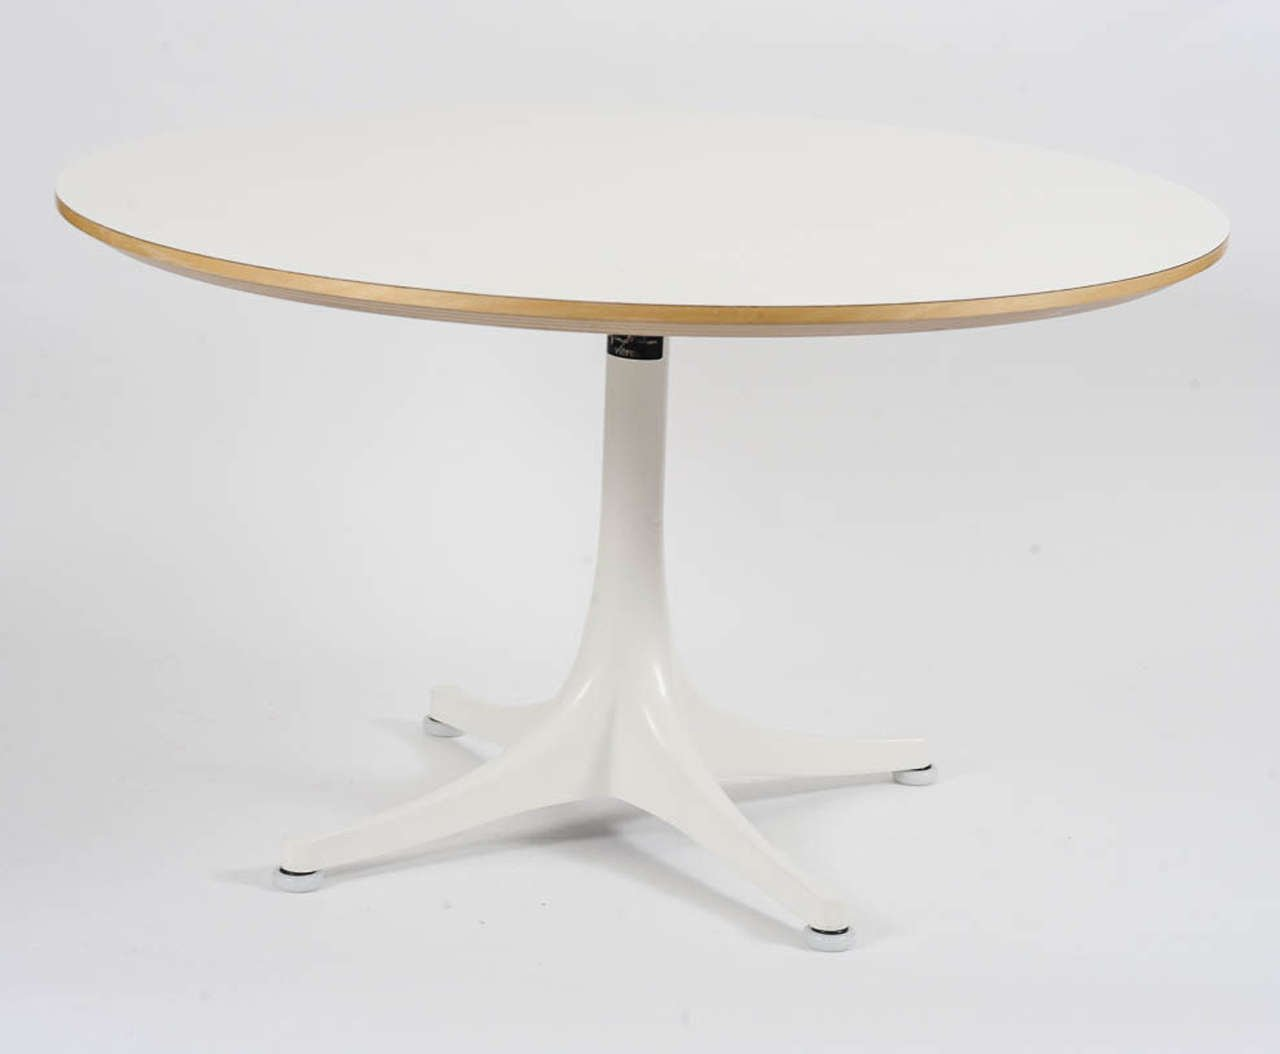 Vintage Pedestal Coffee Table By George Nelson For Vitra